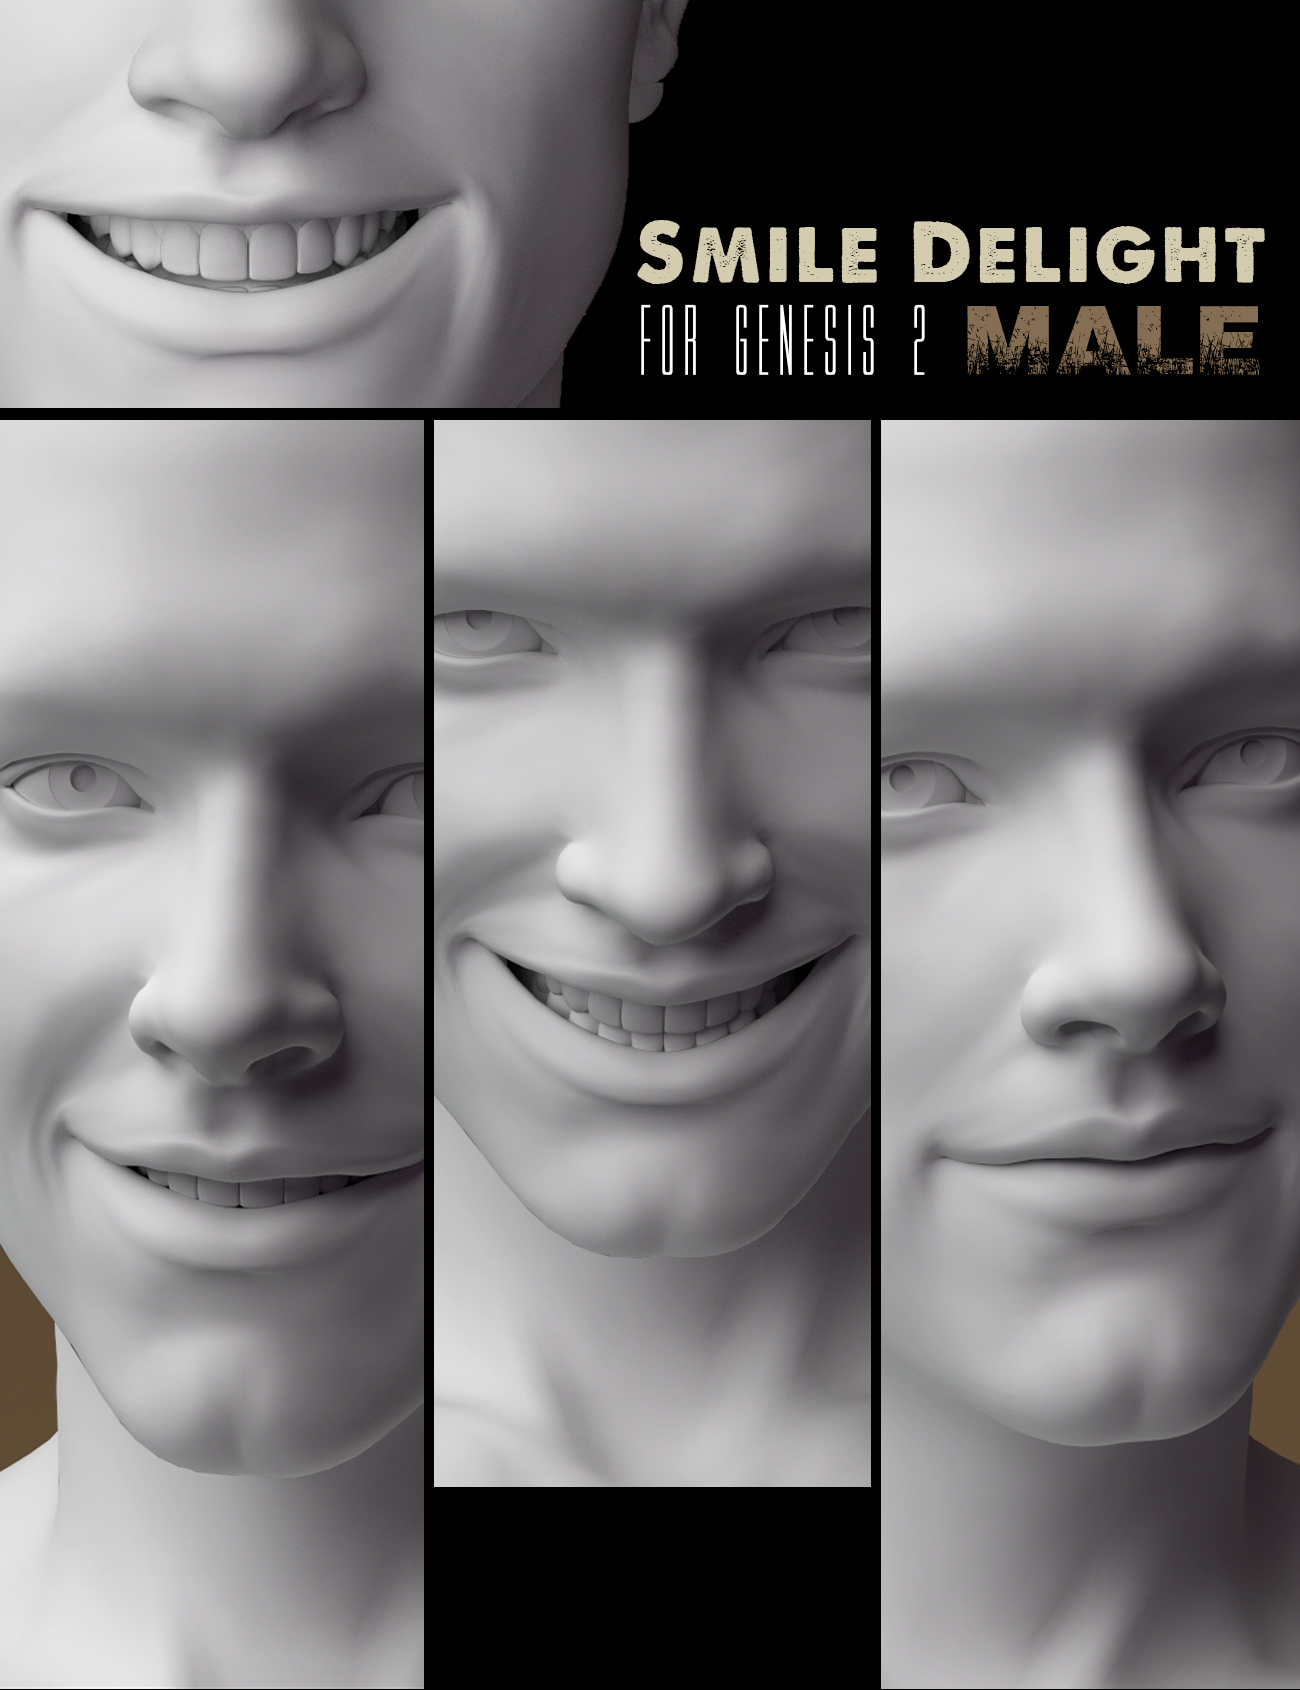 Smile Delight for Genesis 2 Male(s) by: Cake One, 3D Models by Daz 3D